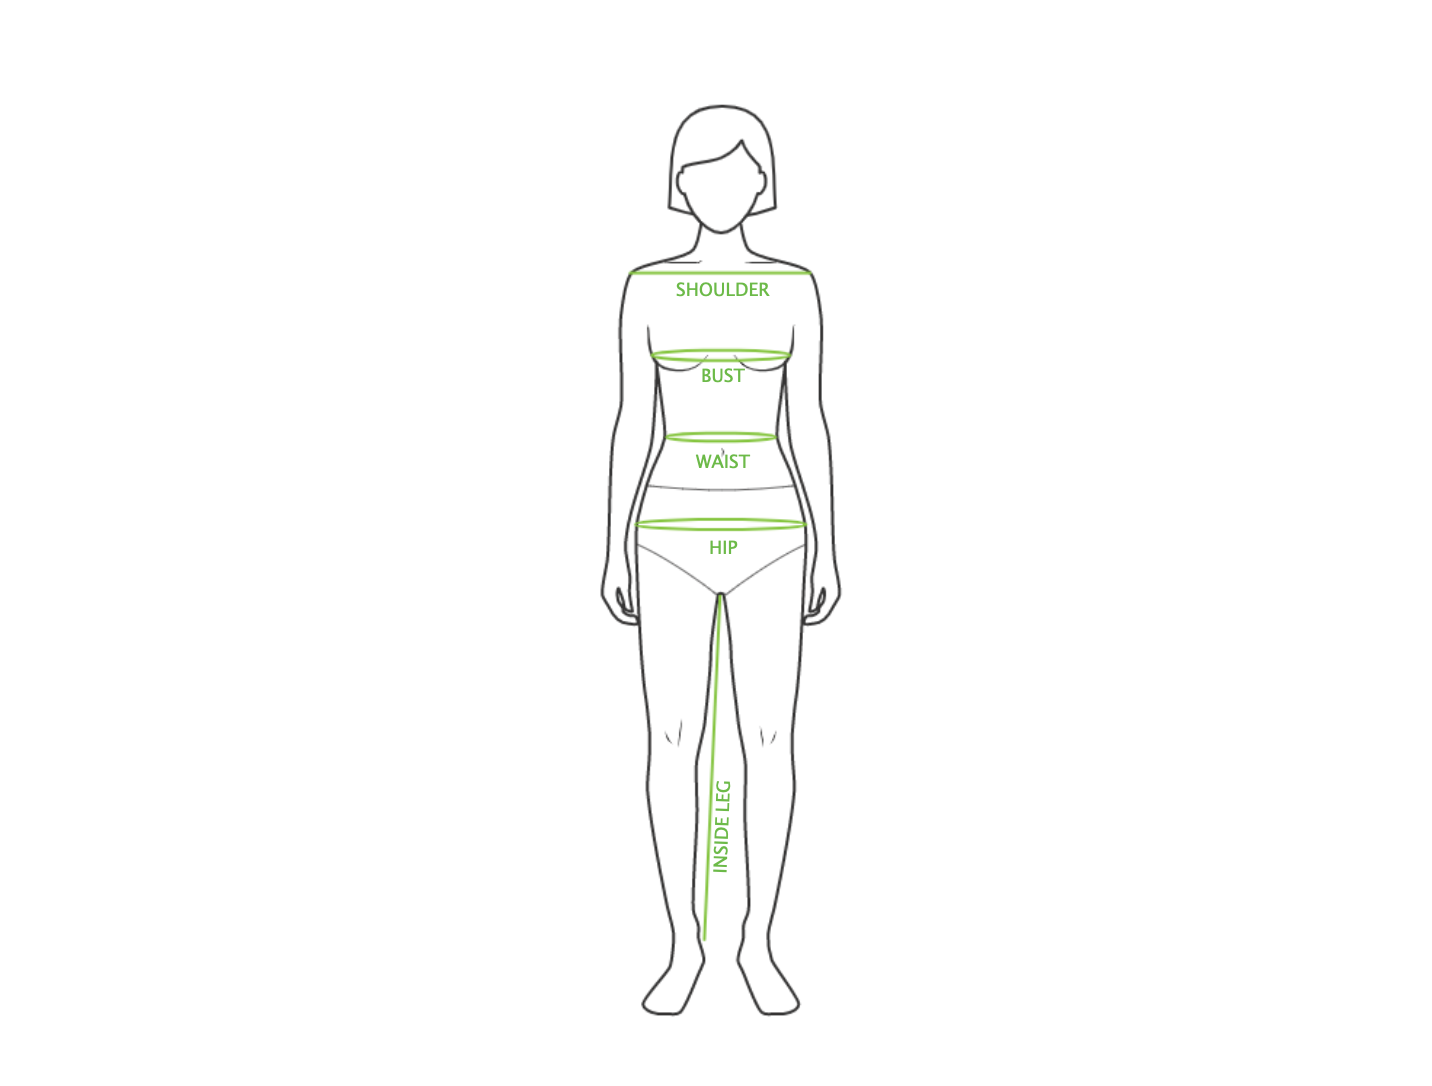 How to Measure a Dress? Kiwi Sizing - Improve conversion and lower returns.